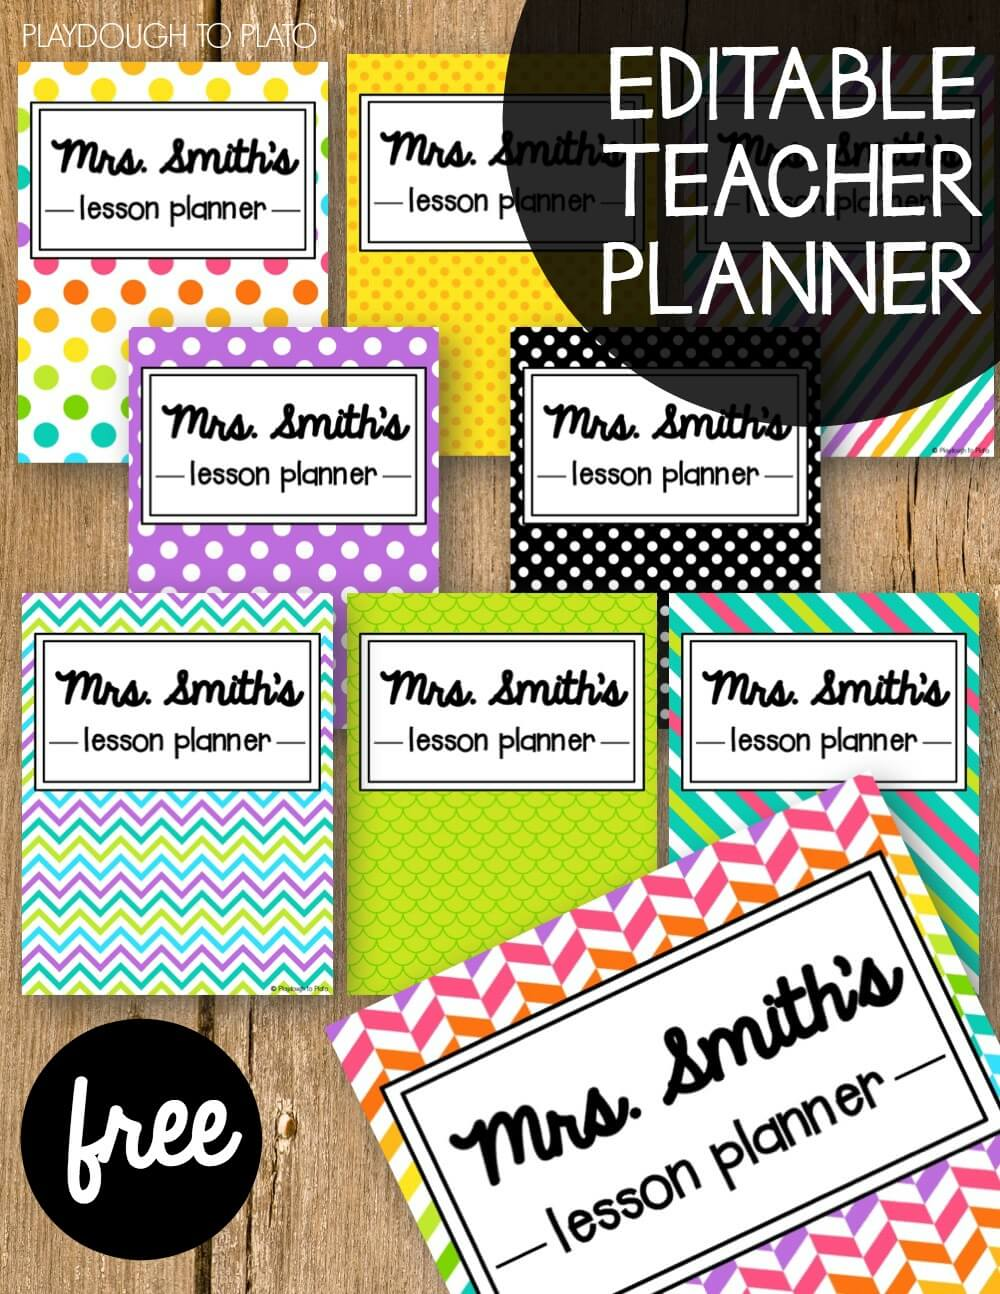 photo relating to Printable Teacher Planner identify Totally free Trainer Planner - Playdough Towards Plato